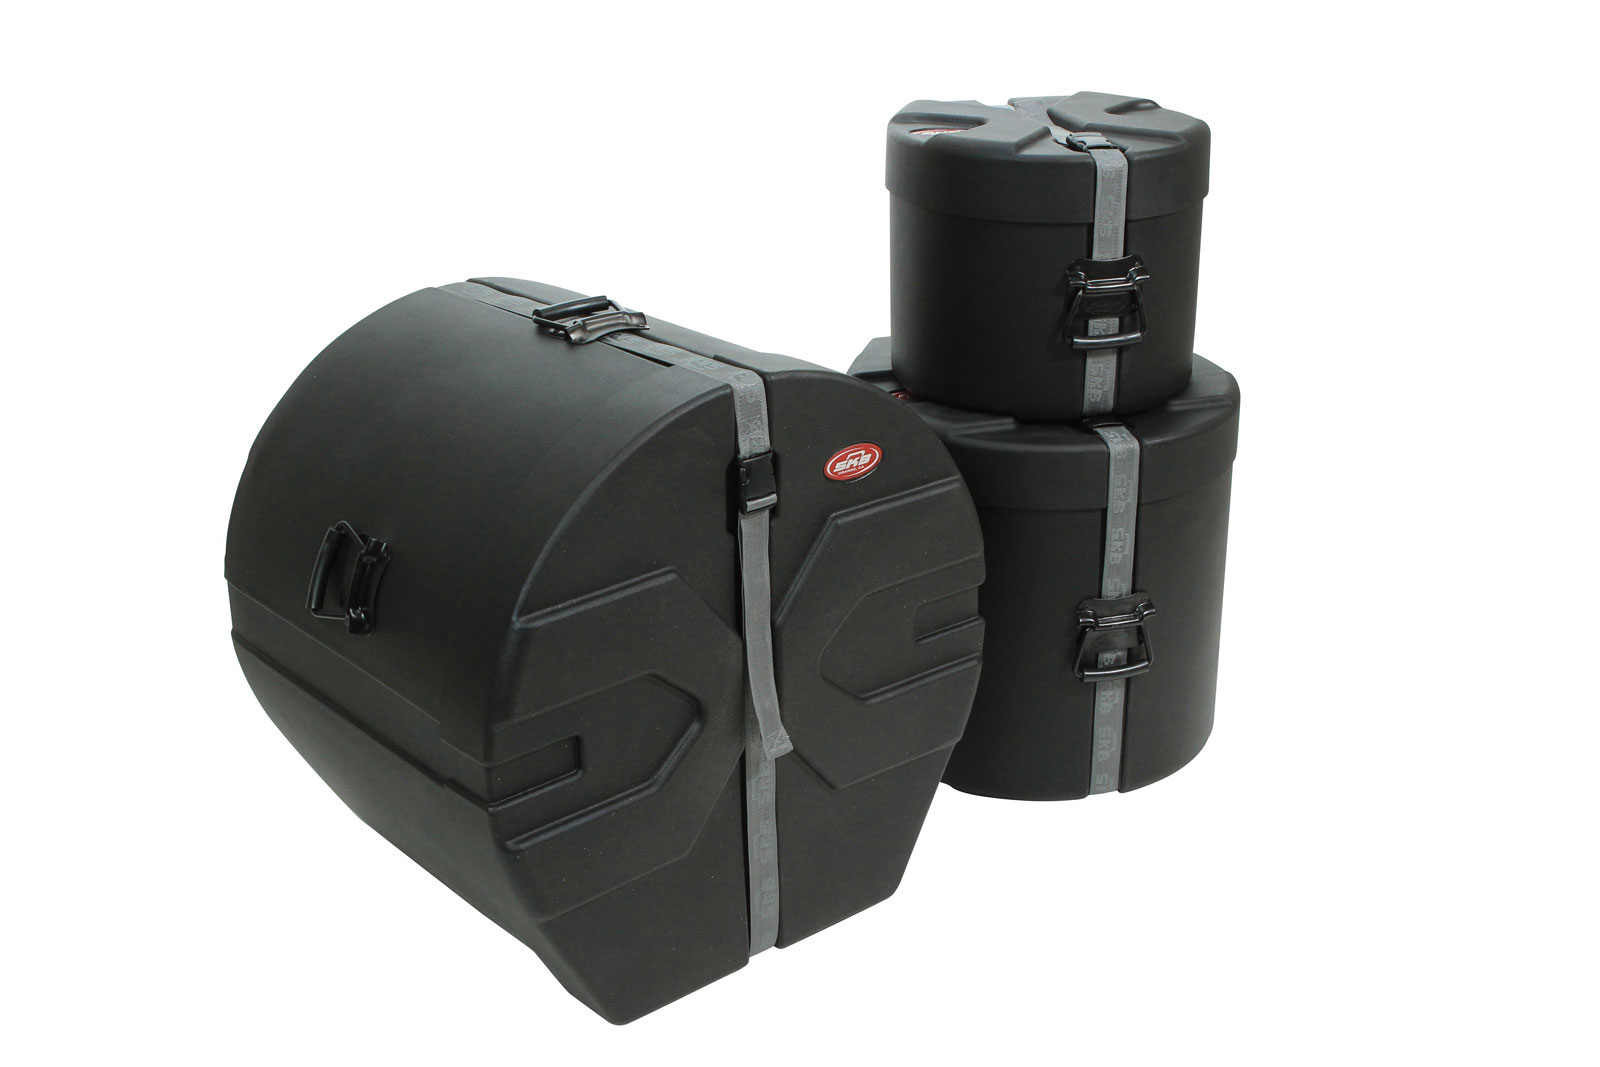 MUSIC PERCUSSION PRODUCTS DRUM KITS 1SKB-DRP2 BLACK